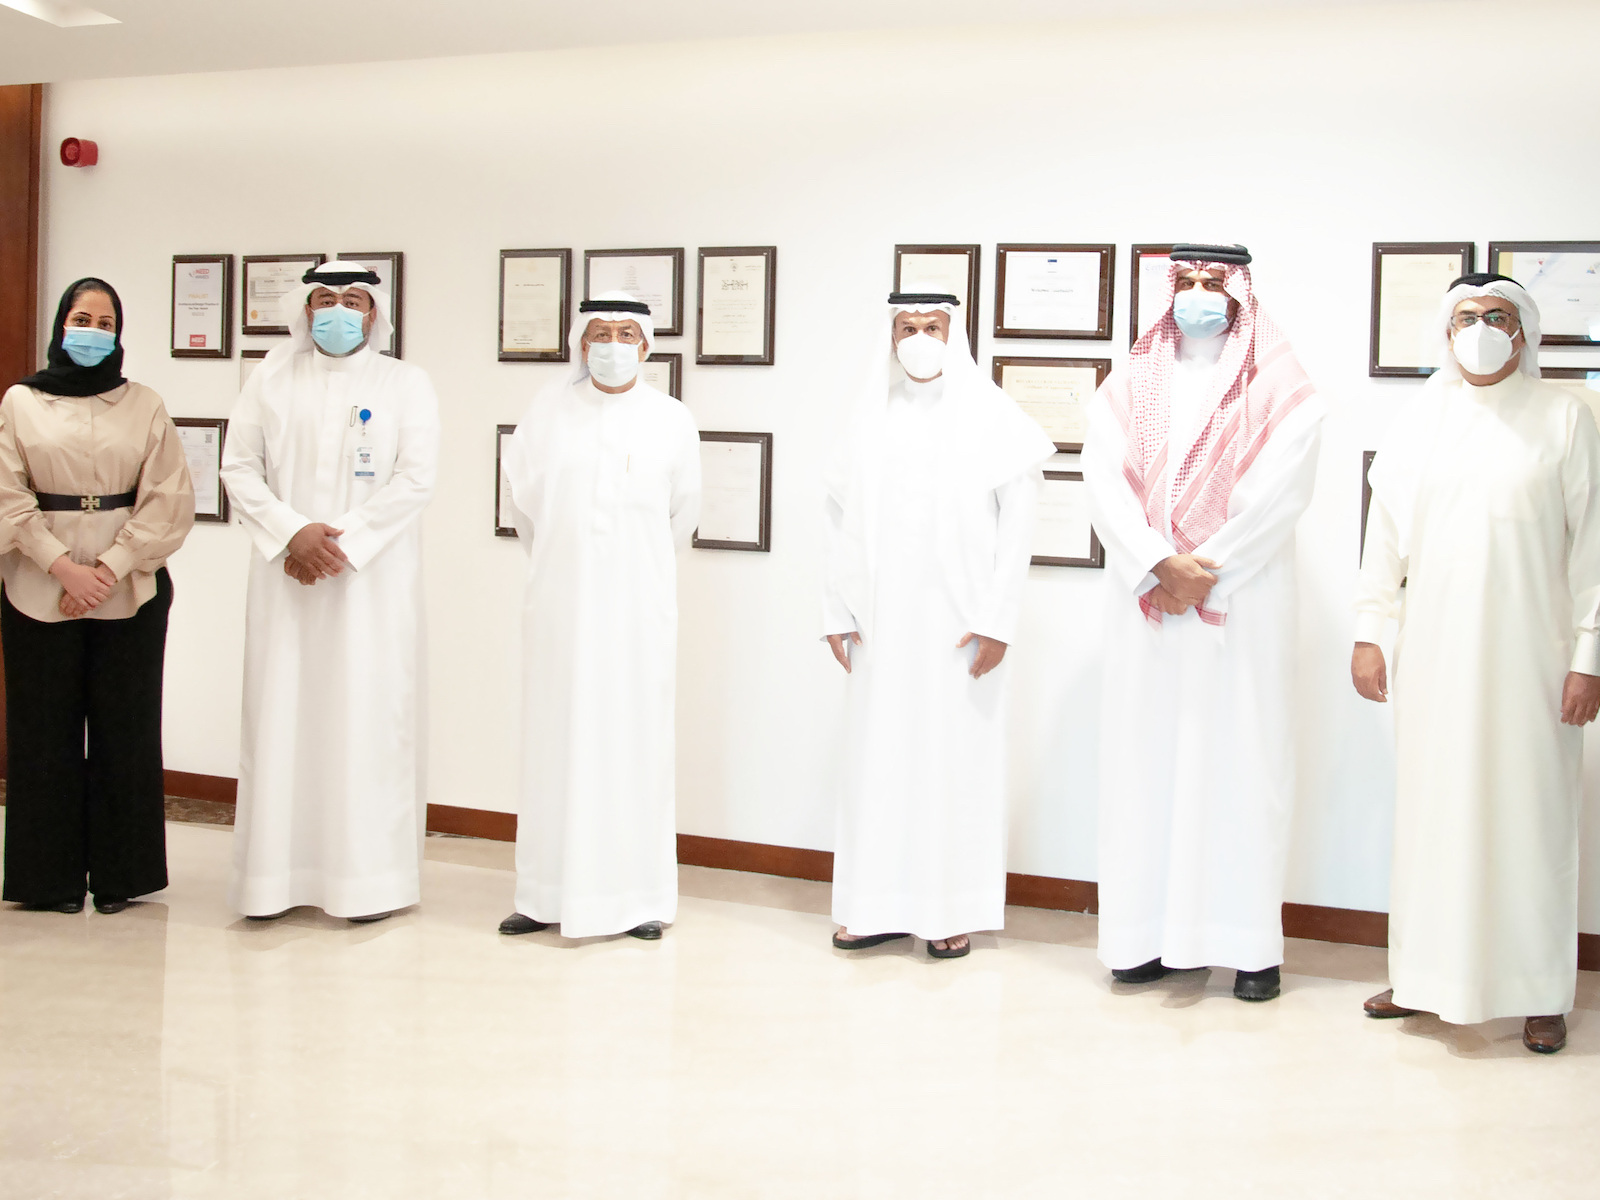 His Excellency Shiekh Hisham bin Abdulrahman Al Khalifa, Governor of the Capital Governance's visit to MSCEB